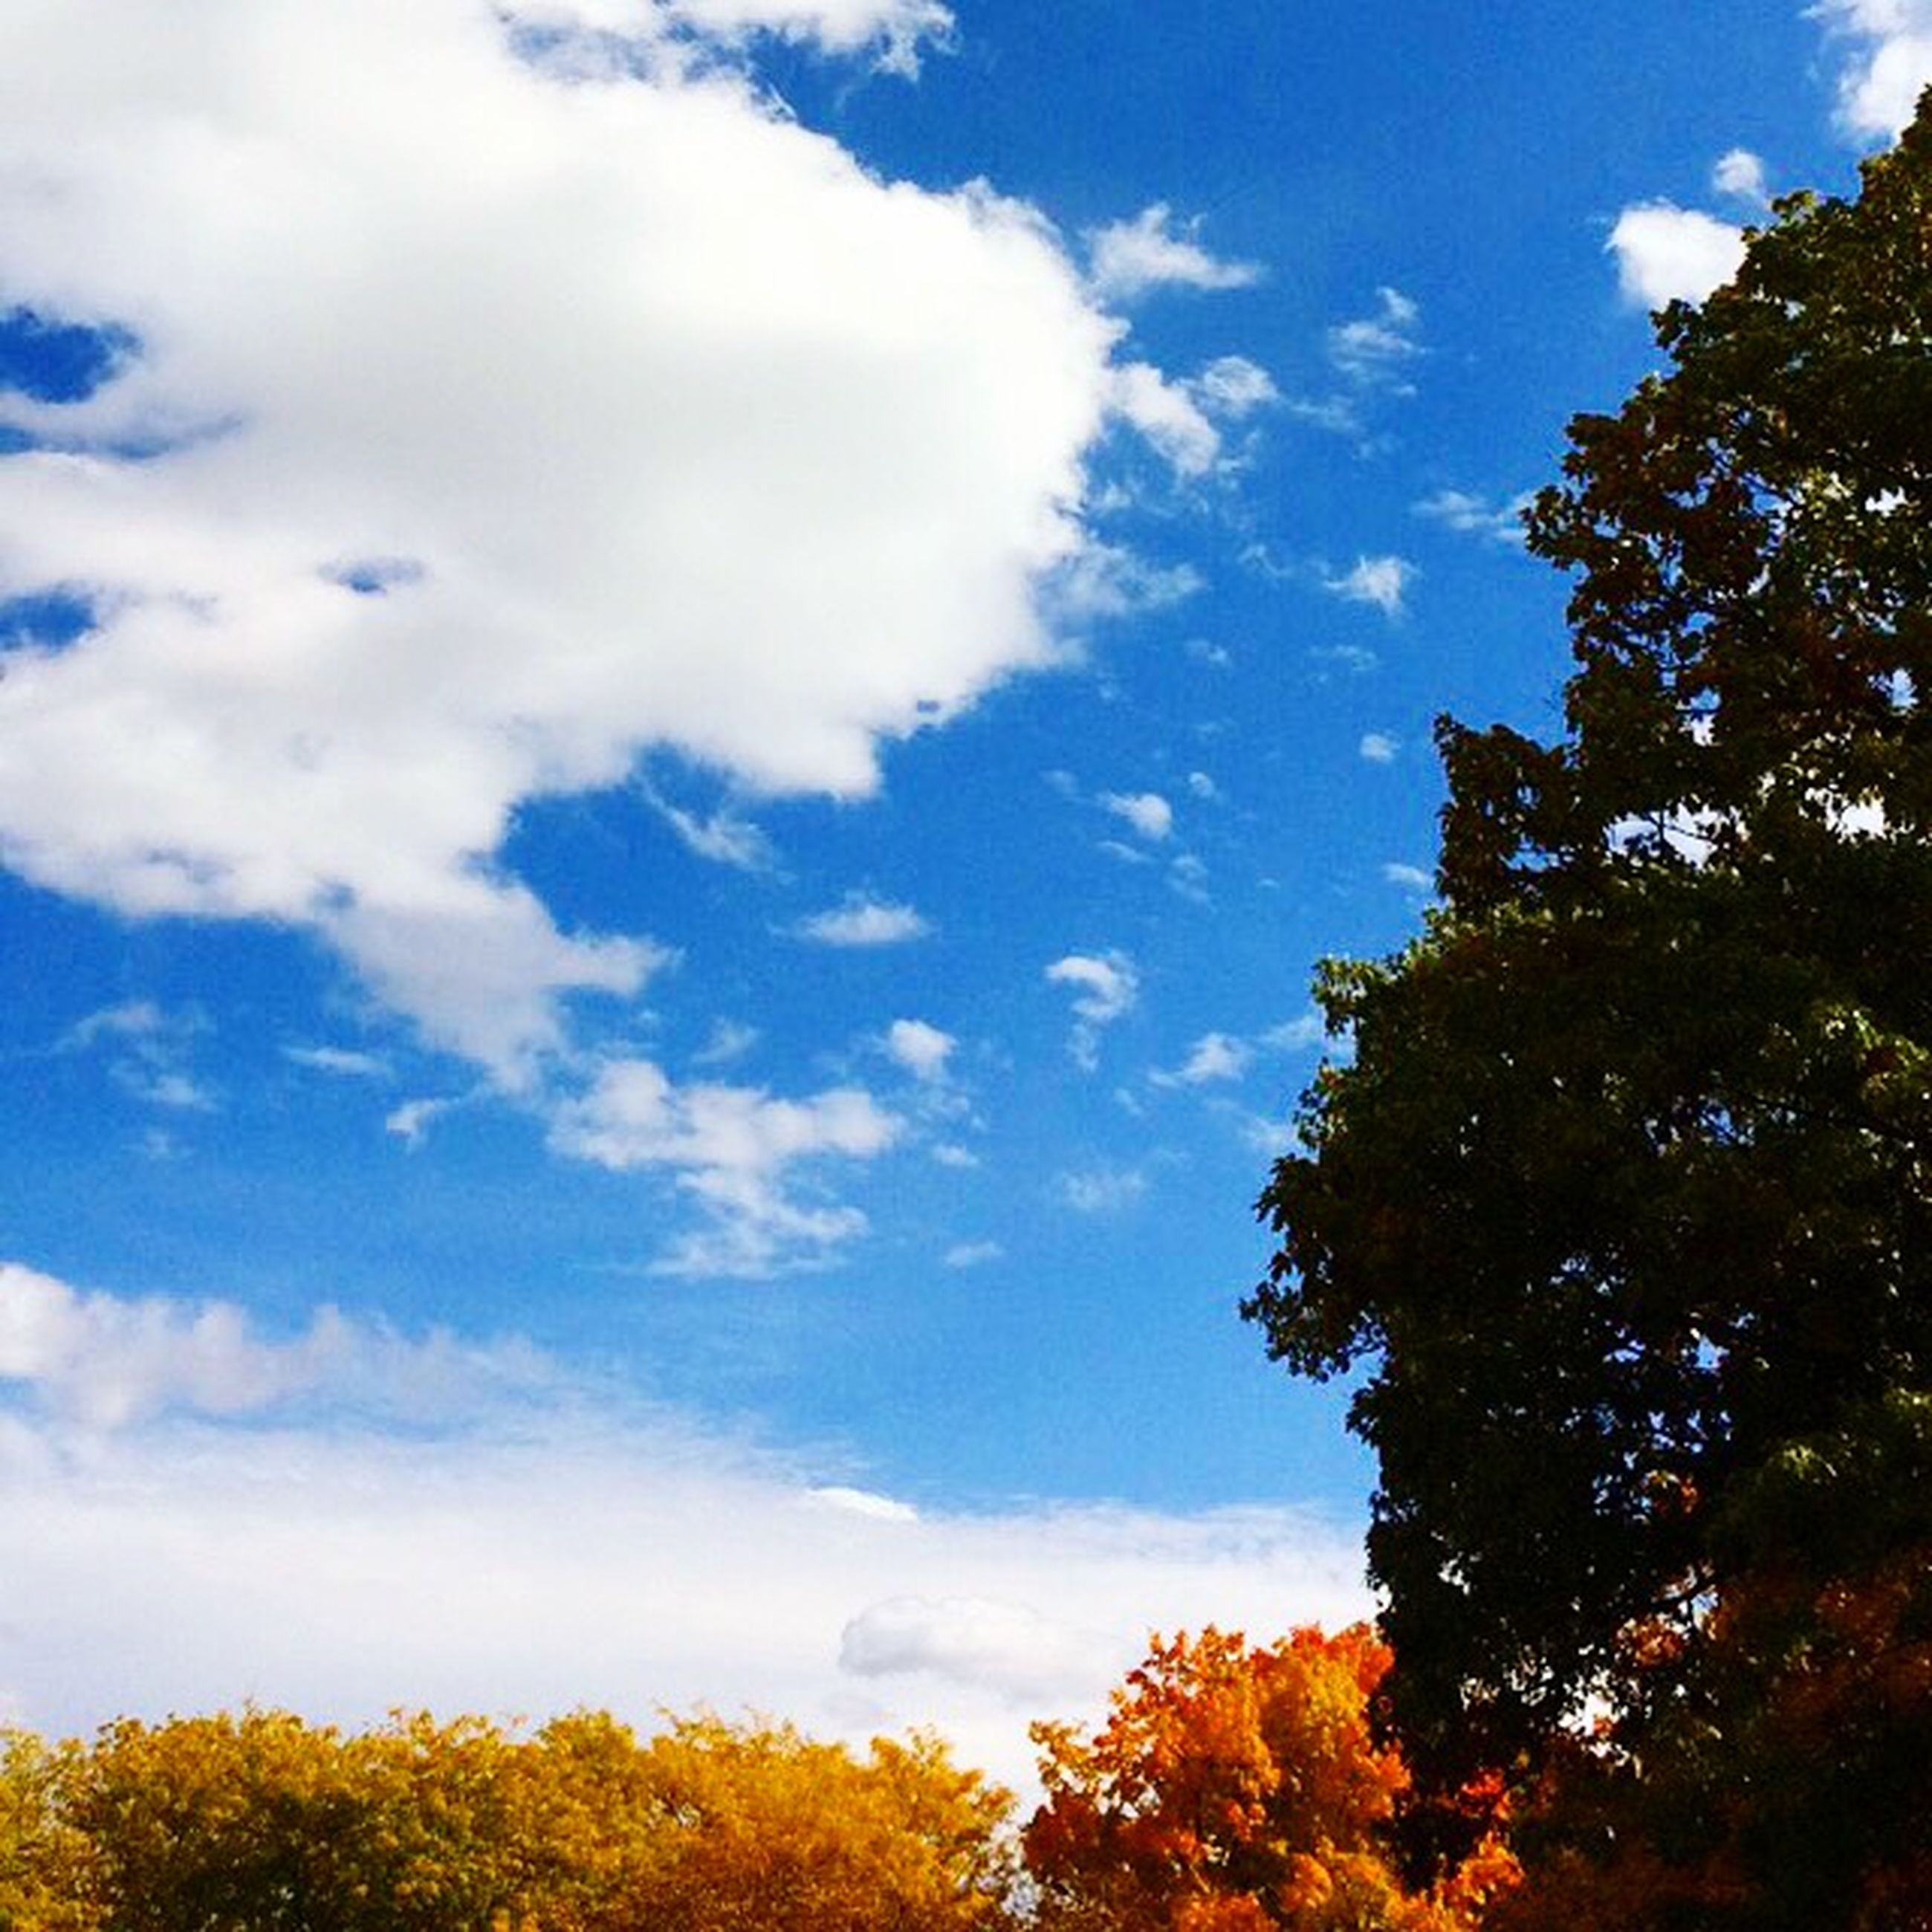 tree, low angle view, sky, growth, beauty in nature, yellow, nature, blue, tranquility, cloud - sky, autumn, scenics, branch, change, tranquil scene, cloud, season, high section, no people, treetop